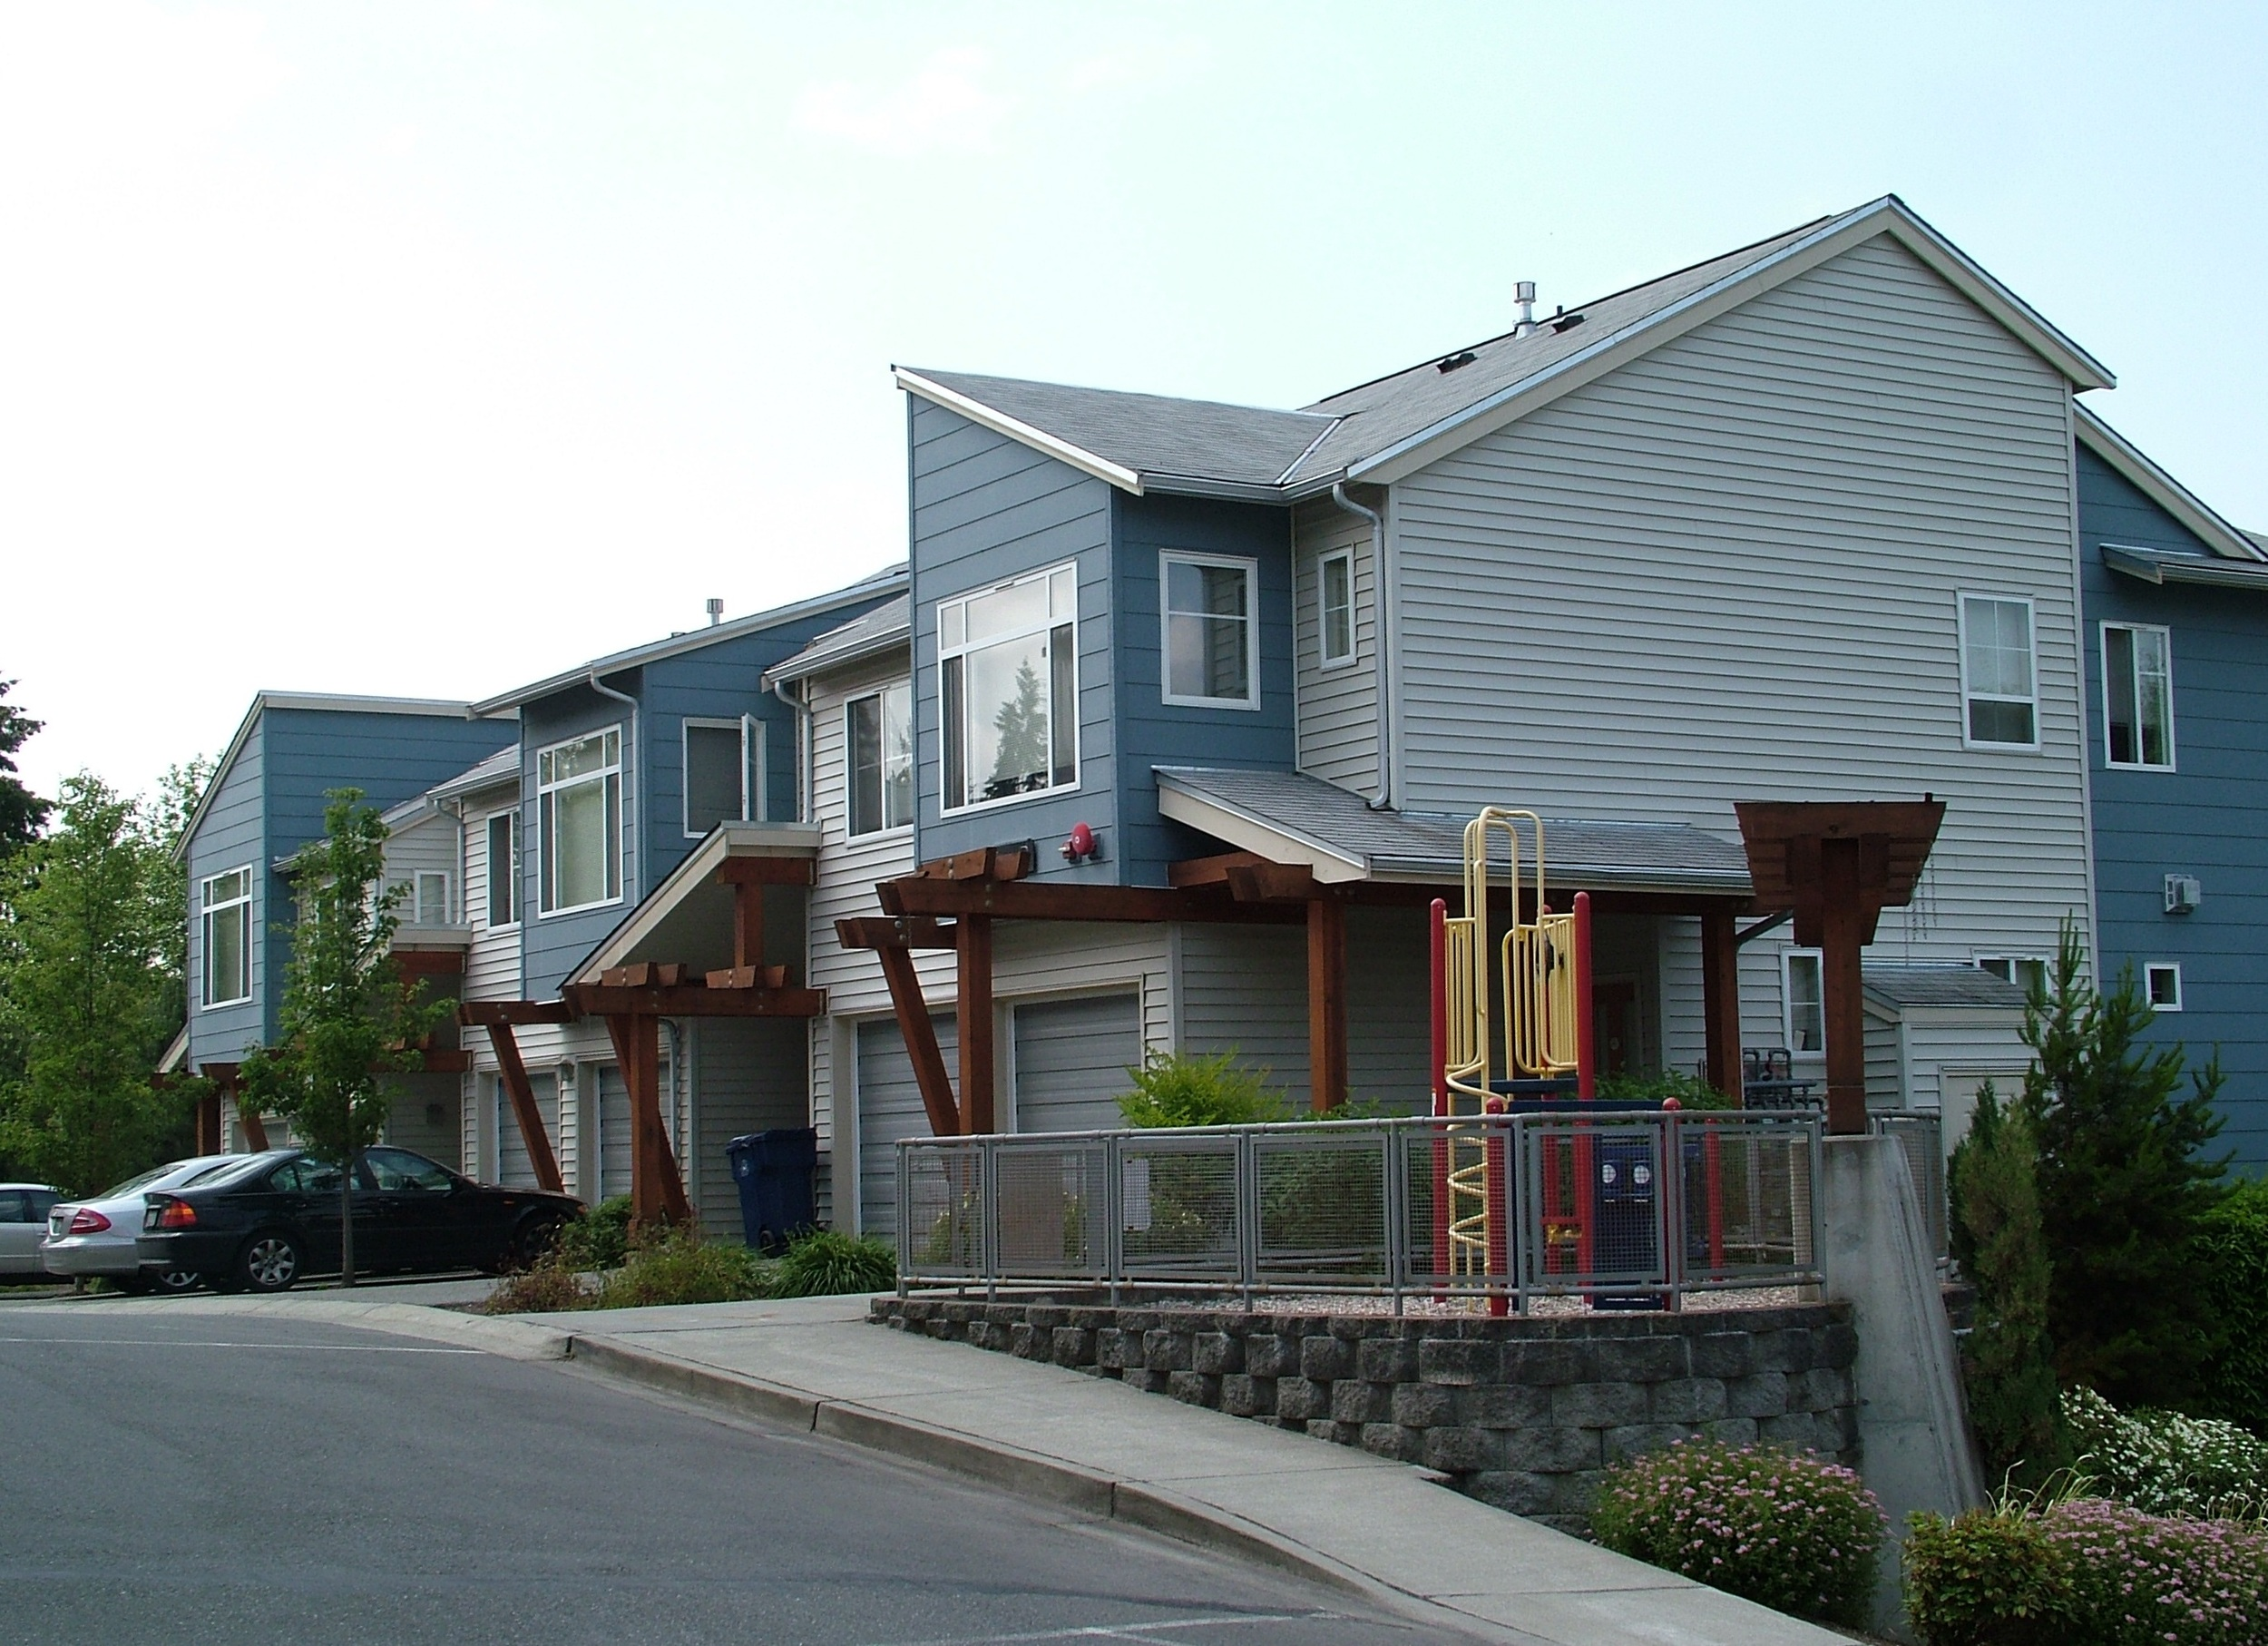 View of play structure and rowhomes